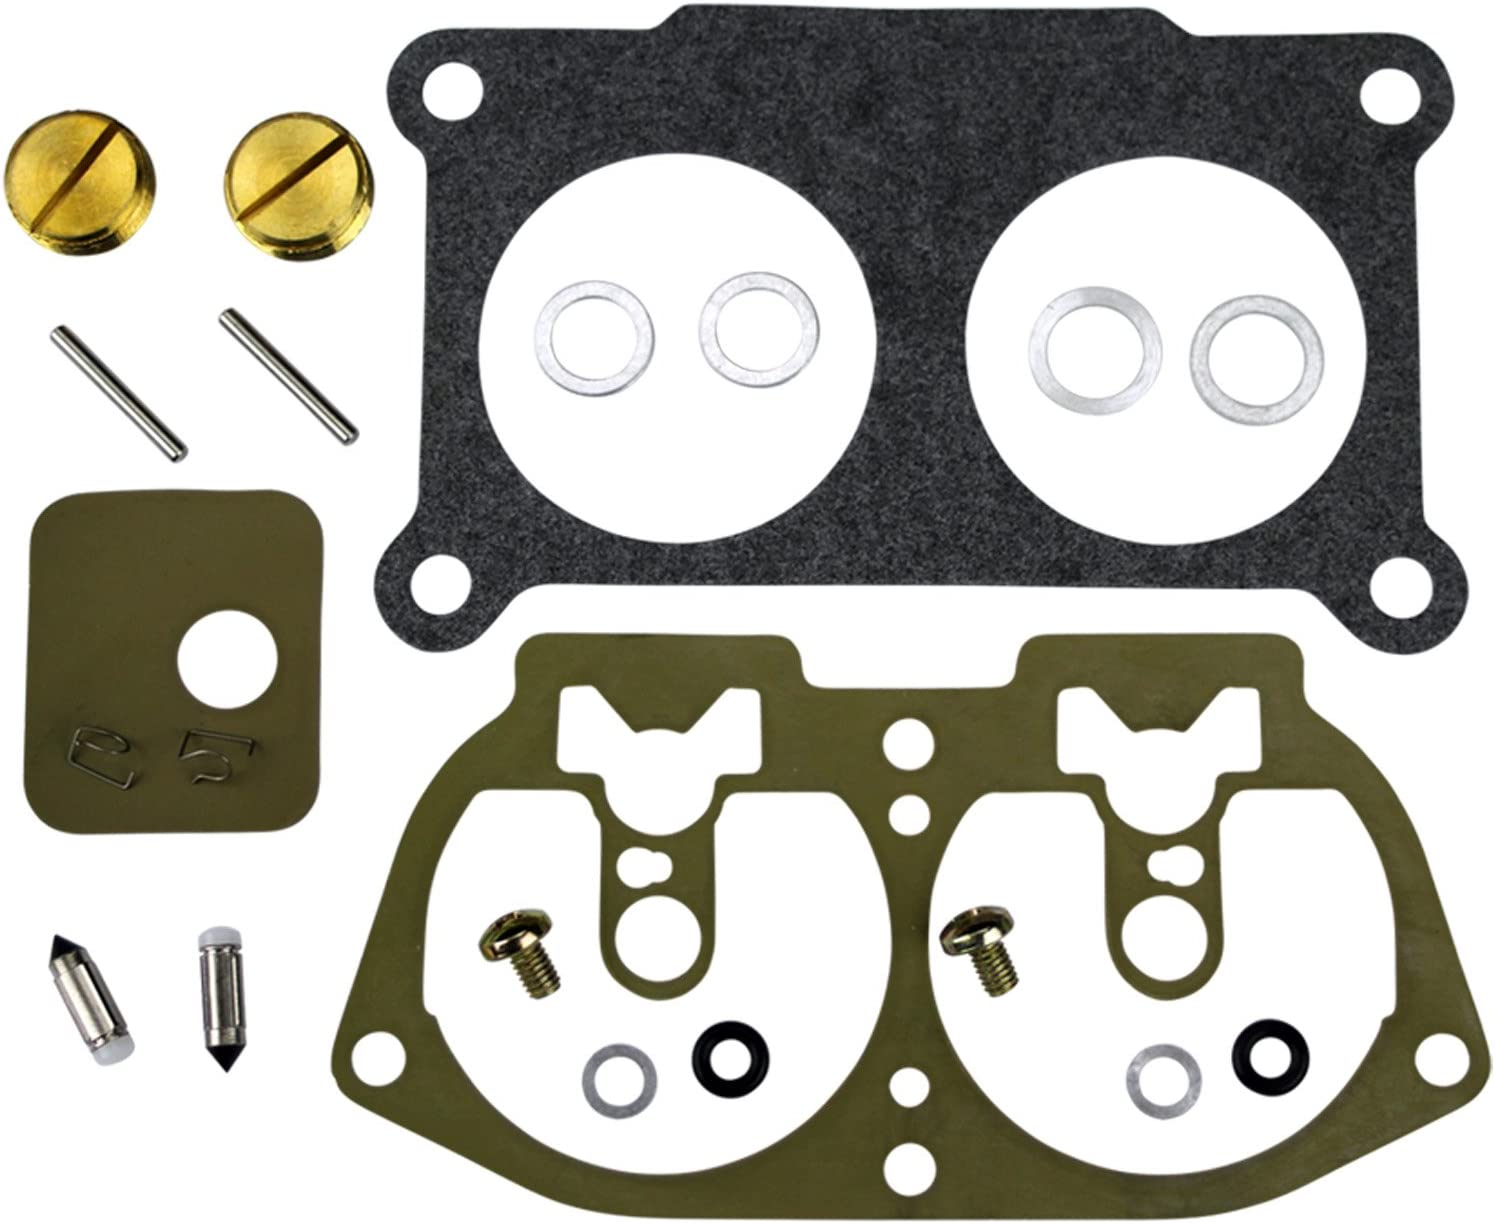 Yamaha Outboard V4 V6 Carb Carburetor Rebuild Kit Many 115 130 150 on carolina skiff wiring harness, suzuki outboard wiring harness, general motors wiring harness, omc wiring harness, motorcycle wiring harness, outboard motor wiring harness, yamaha wiring diagram, toyota wiring harness, yamaha blaster carburetor diagram, alternator wiring harness, yamaha engine wiring harness, yamaha stator coil, force outboard wiring harness, honda outboard wiring harness, volvo penta wiring harness, caterpillar wiring harness, ford wiring harness, sea-doo wiring harness, boston whaler wiring harness, yamaha rhino wiring harness,